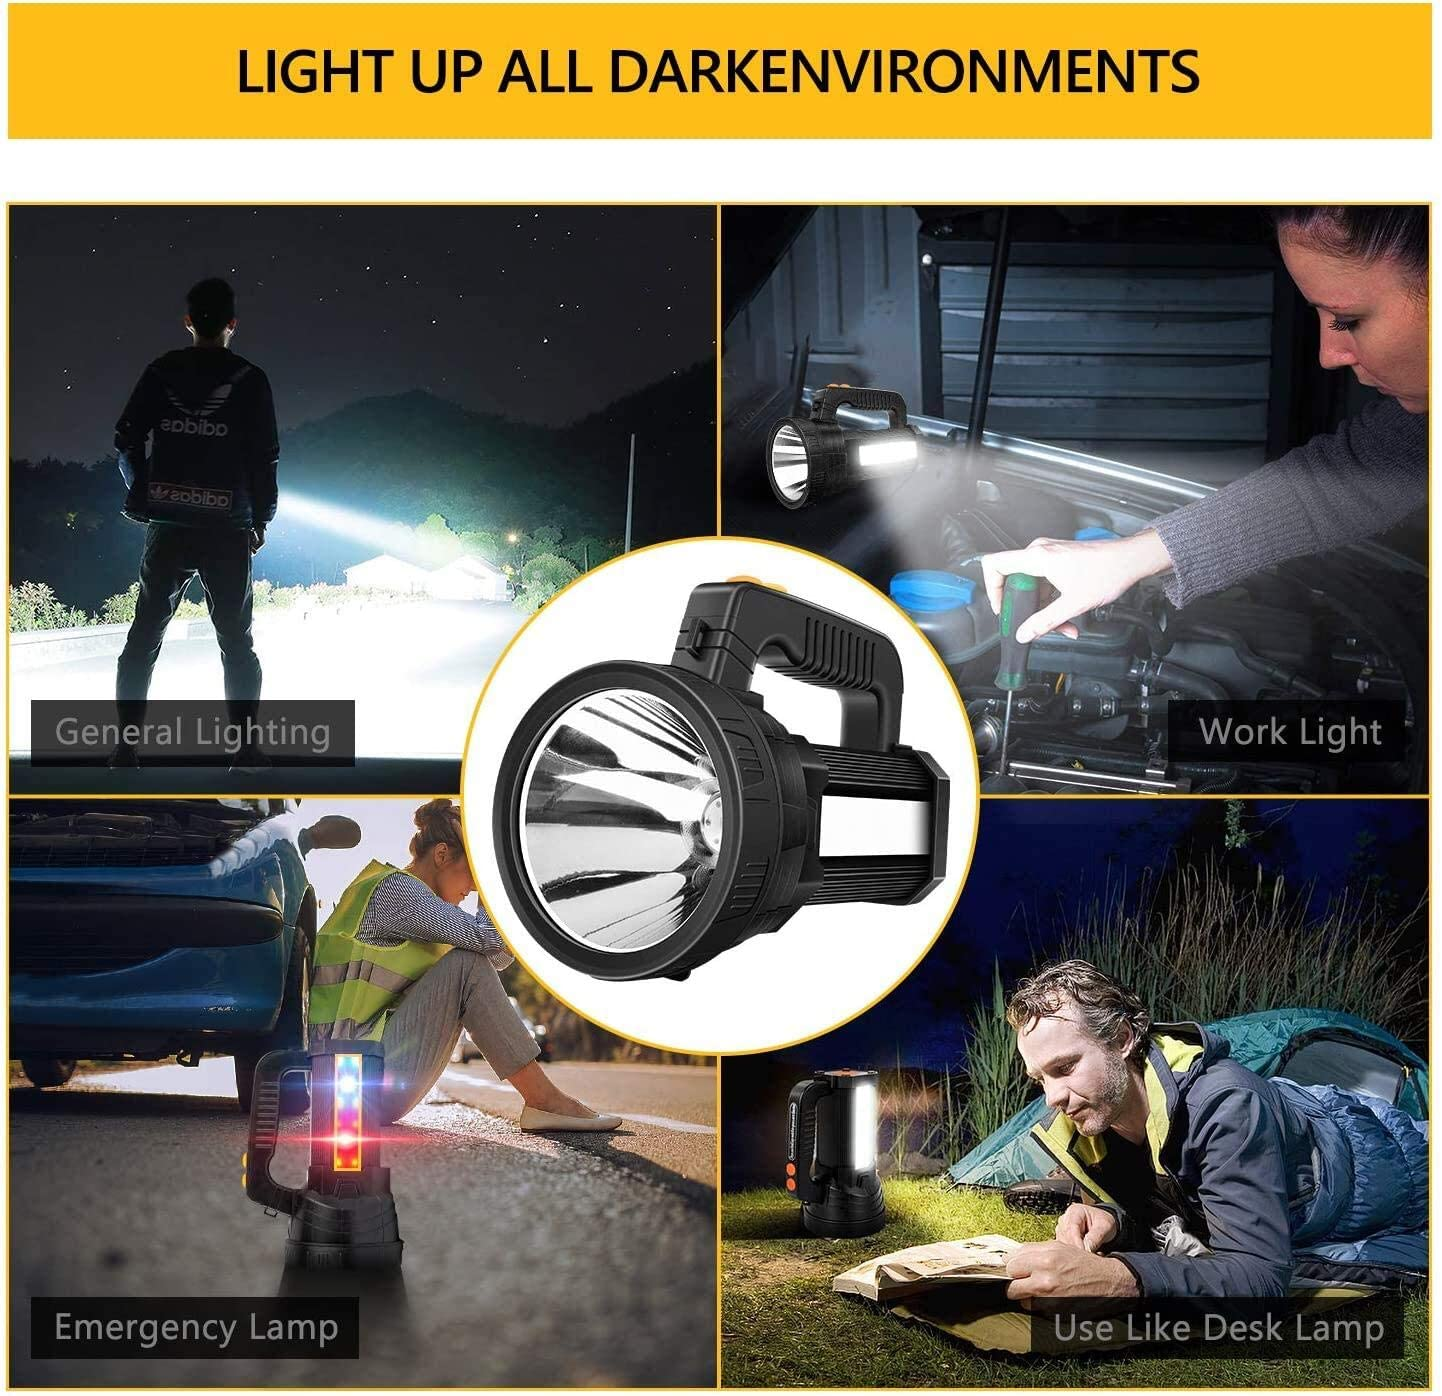 USB Output PowerBank 6 Light Modes Side Floodlight Super Bright LED Handheld Spotlight Flashlight Rechargeable 9600mAh 6000 Lumens Long Lasting Spot Light CREE Waterproof Tactical Torch